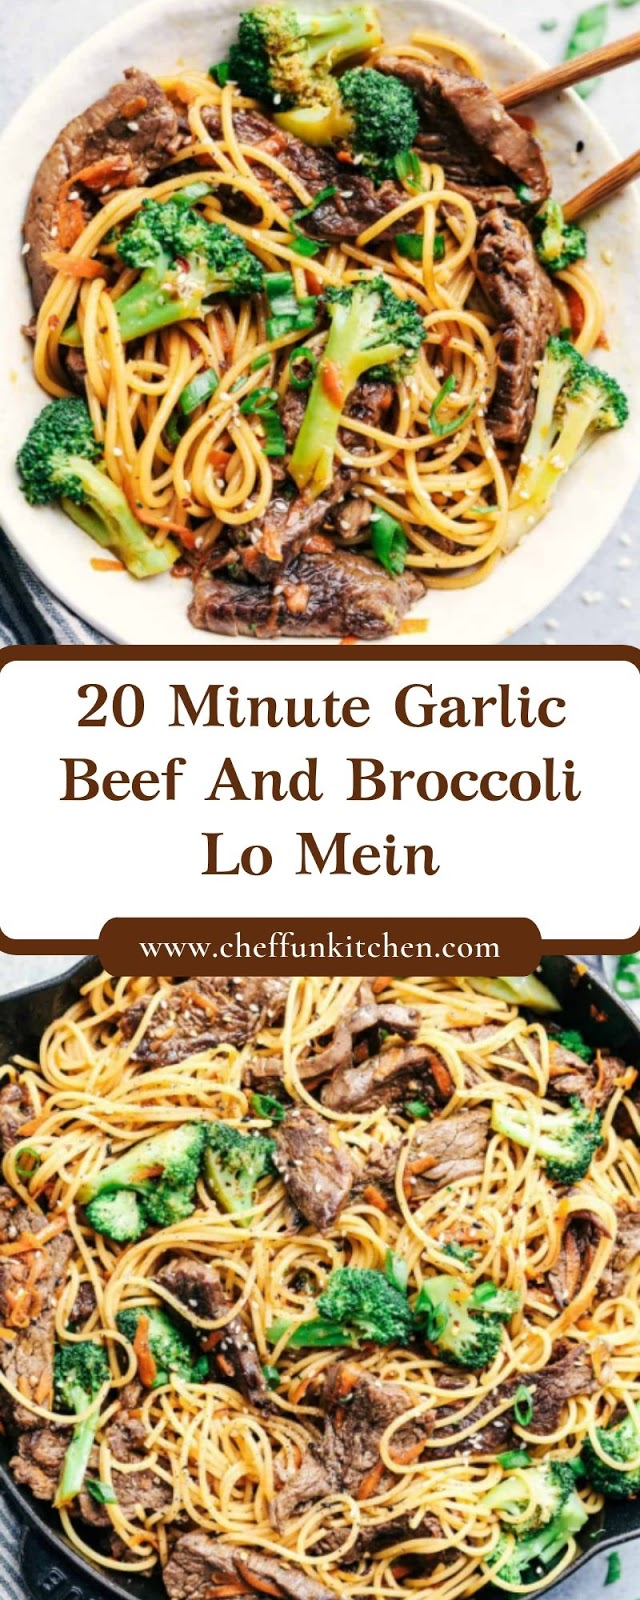 20 Minute Garlic Beef And Broccoli Lo Mein